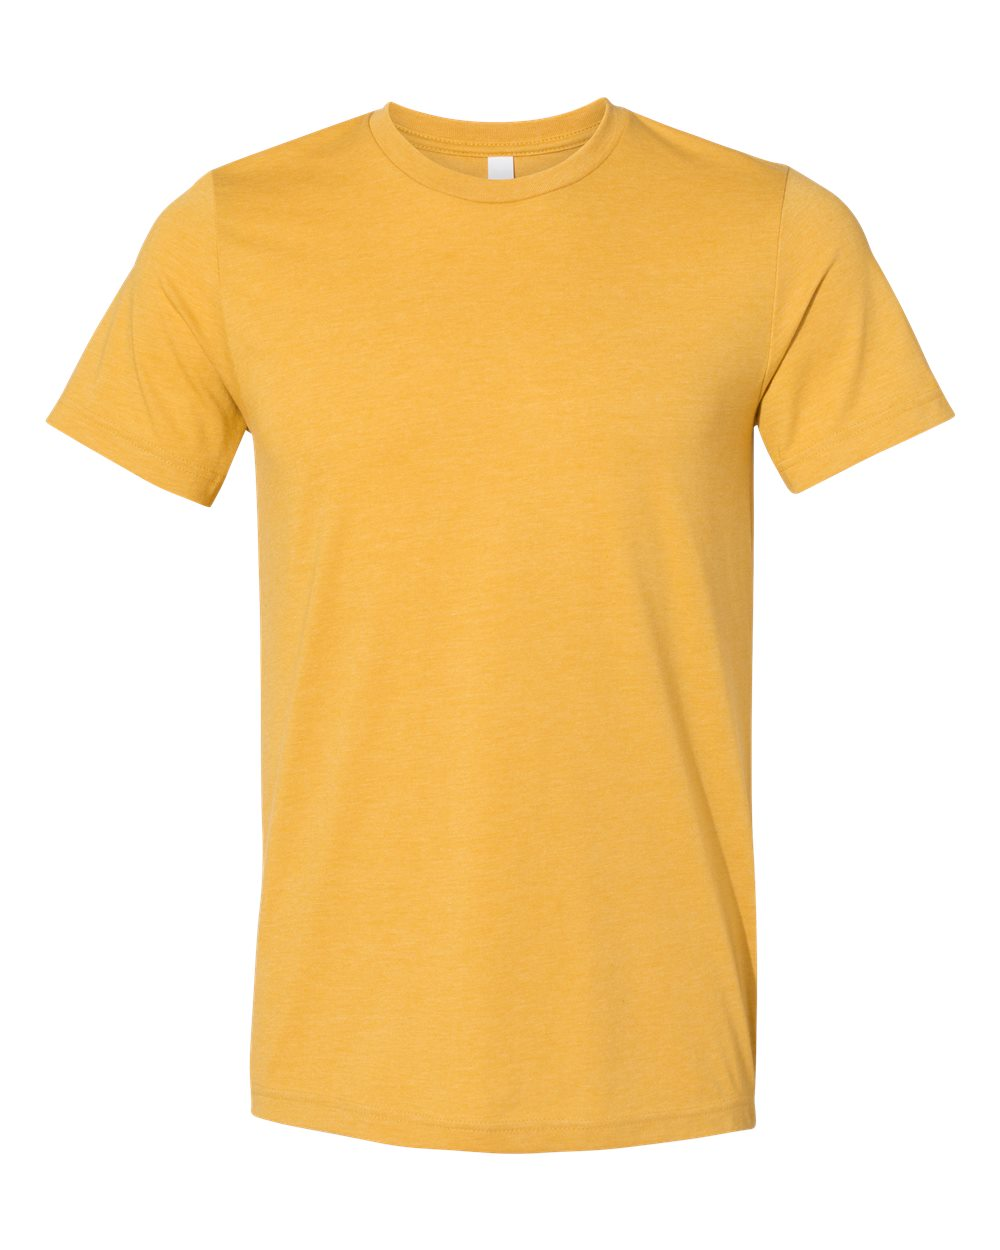 click to view Heather Mustard